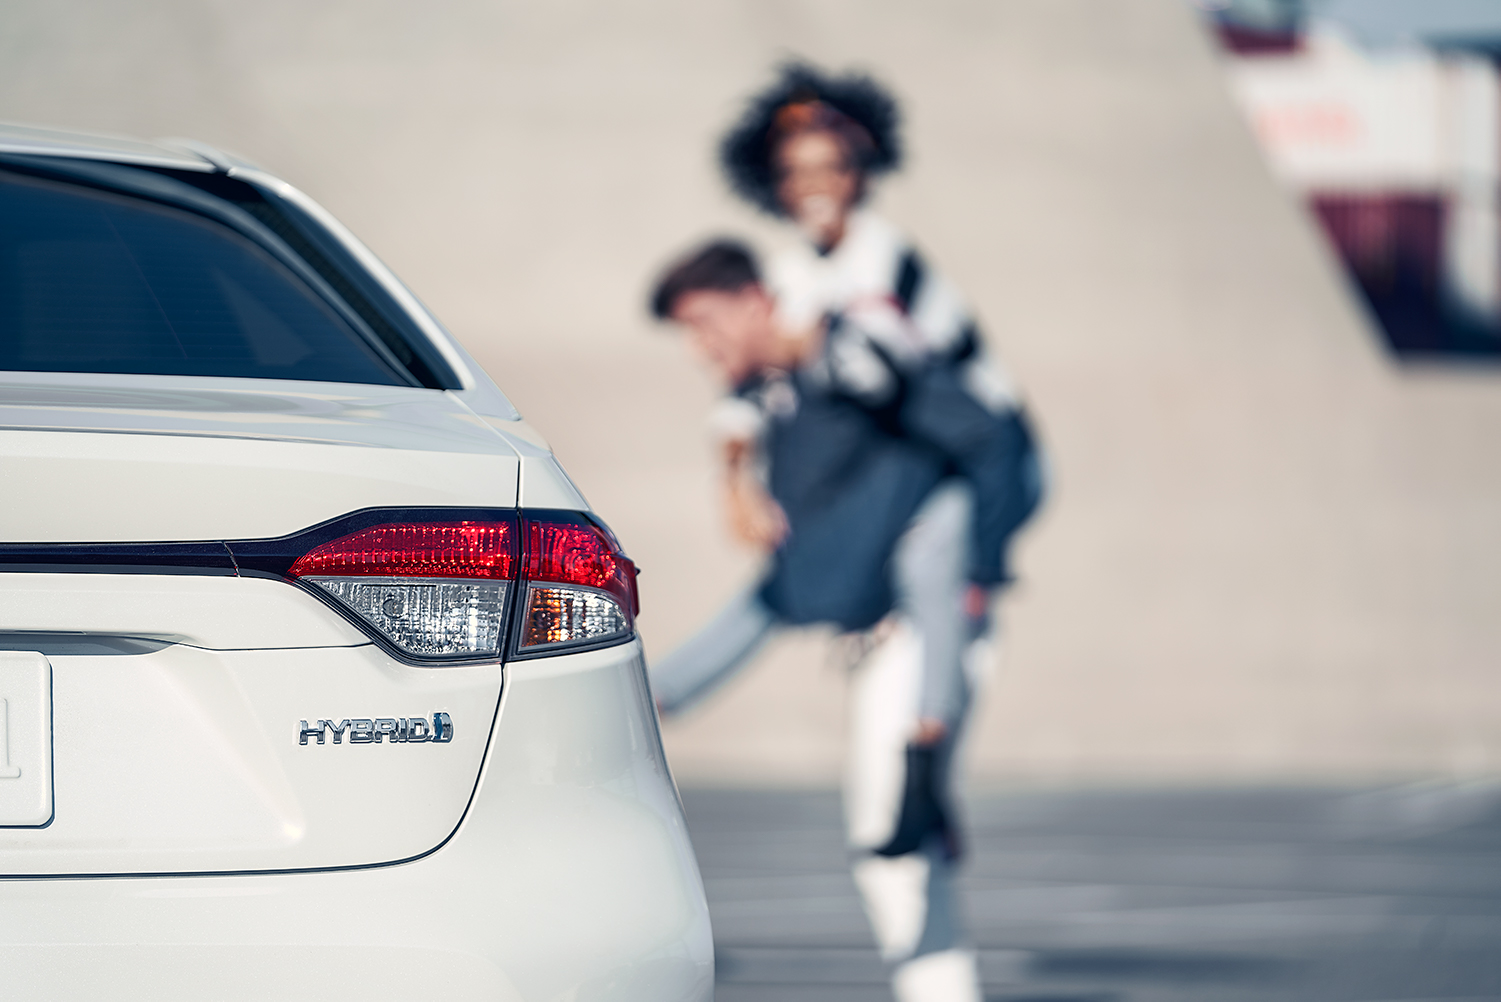 Model Features of the 2020 Toyota Corolla at Tri County Toyota in Royersford | White 2020 Corolla Hybrid